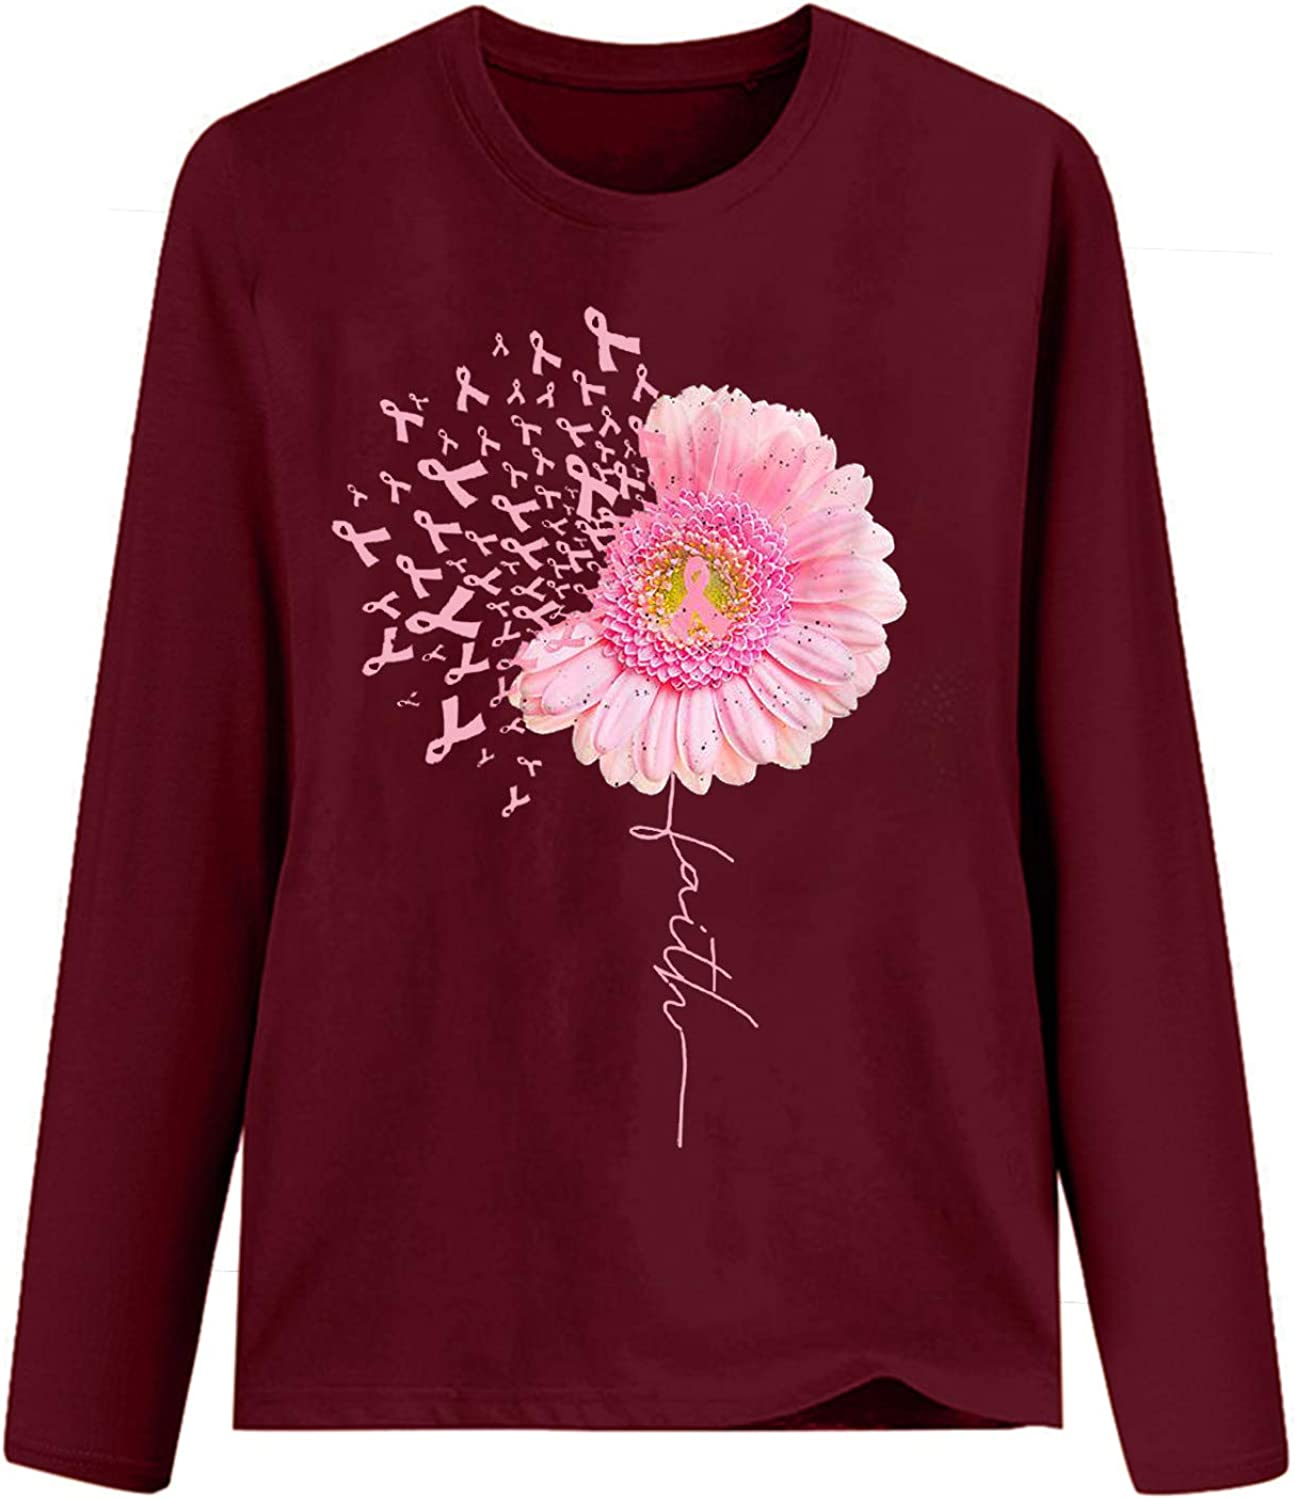 Long Sleeve for Women Breast Cancer Top Casual Tops O-Neck Sweatshirt Pullover Blouse for Ladies